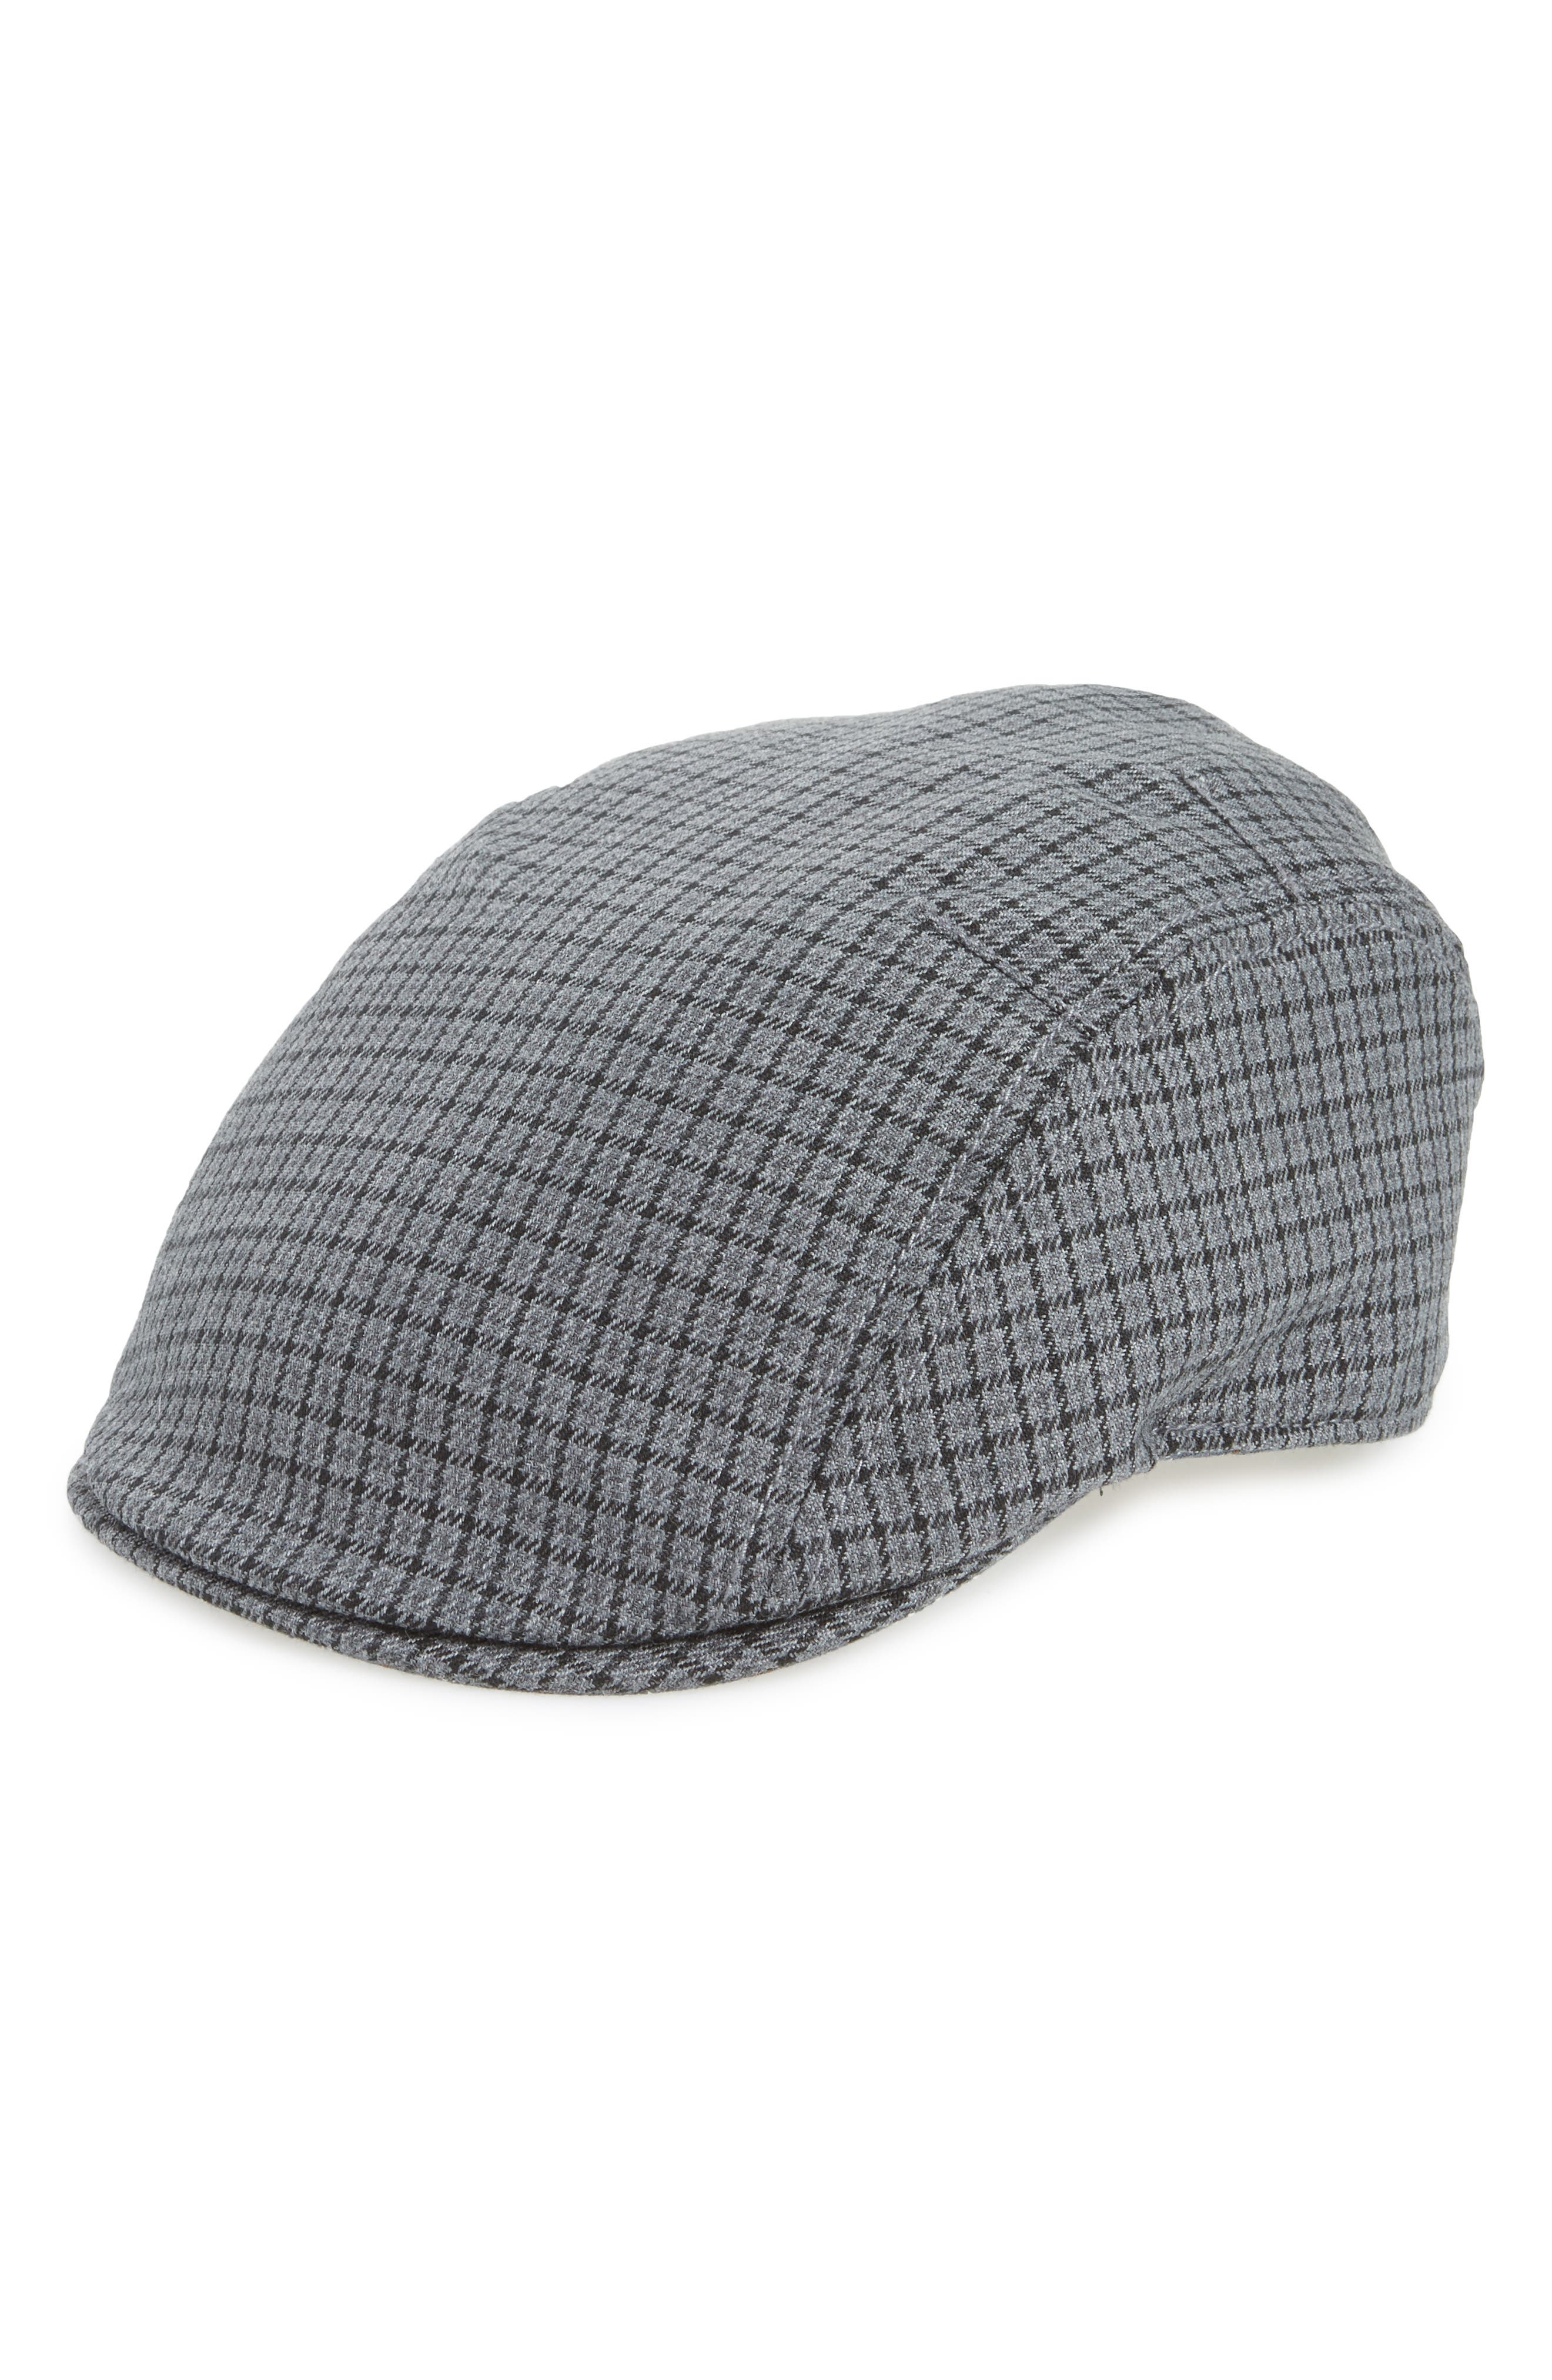 Oscar Plaid Driving Cap,                             Main thumbnail 1, color,                             020